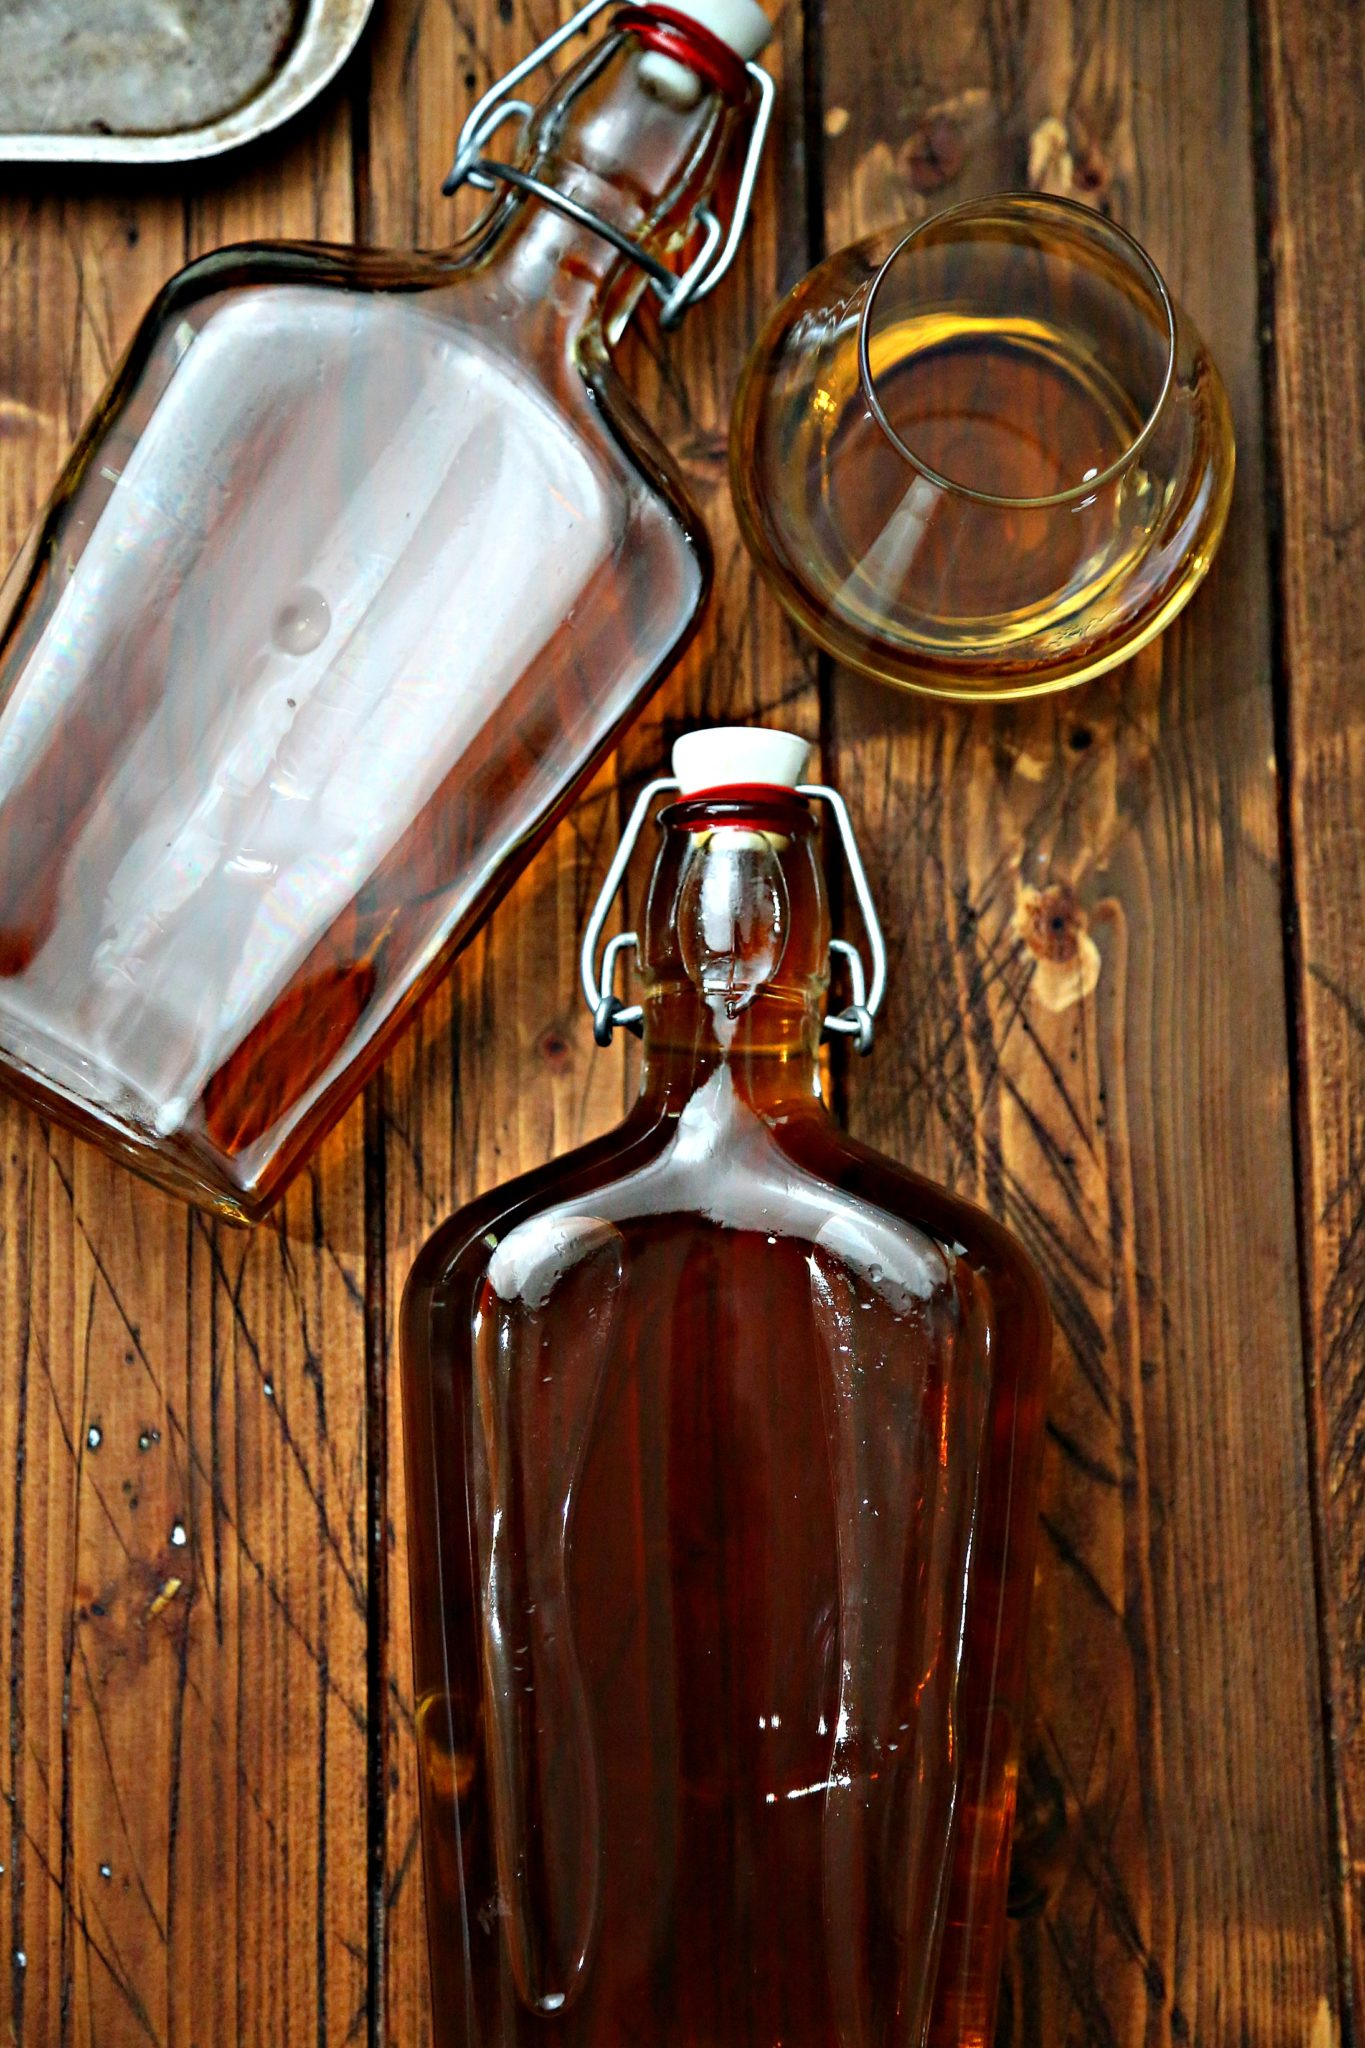 Glass Bottle with stopper of homemade amaretto with small white bowl of brown sugar in background via Bell'Alimento